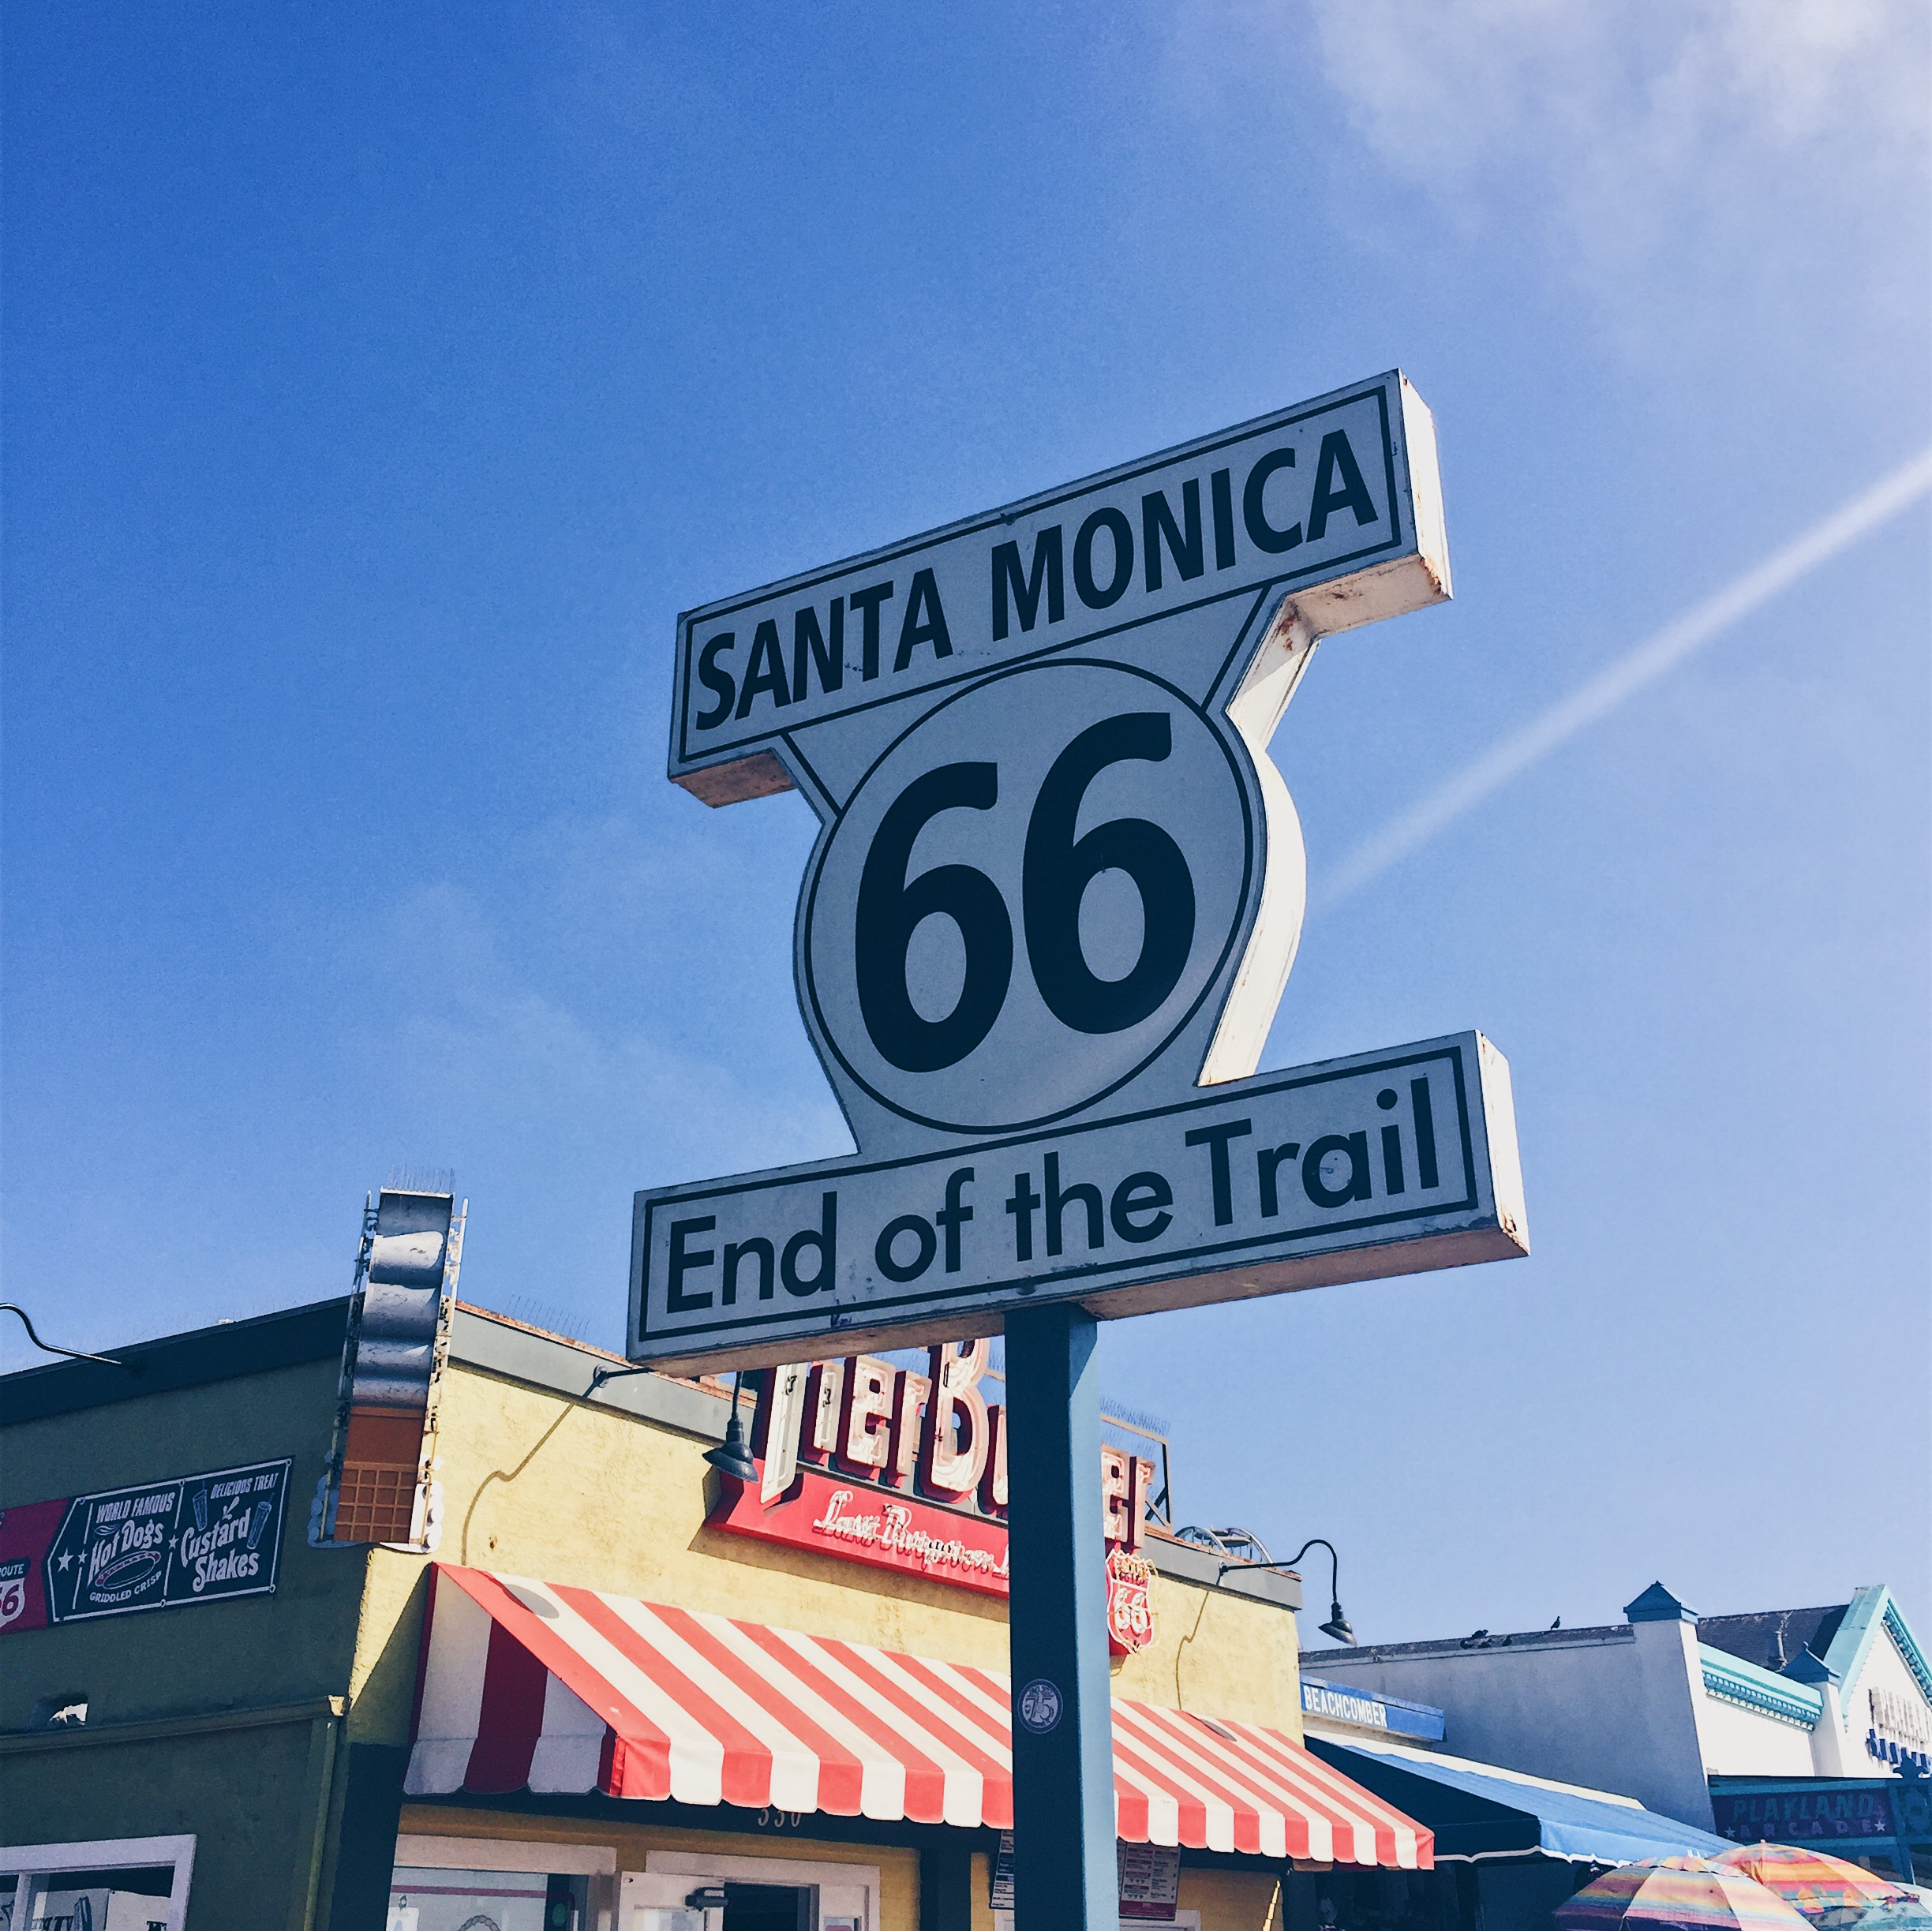 Santa Monica, California, USA - Promenade Mall, Third Street Promenade, Pacific Park, Route 66 Sign, Santa Monica Beach and Santa Monica Pier - helloteri